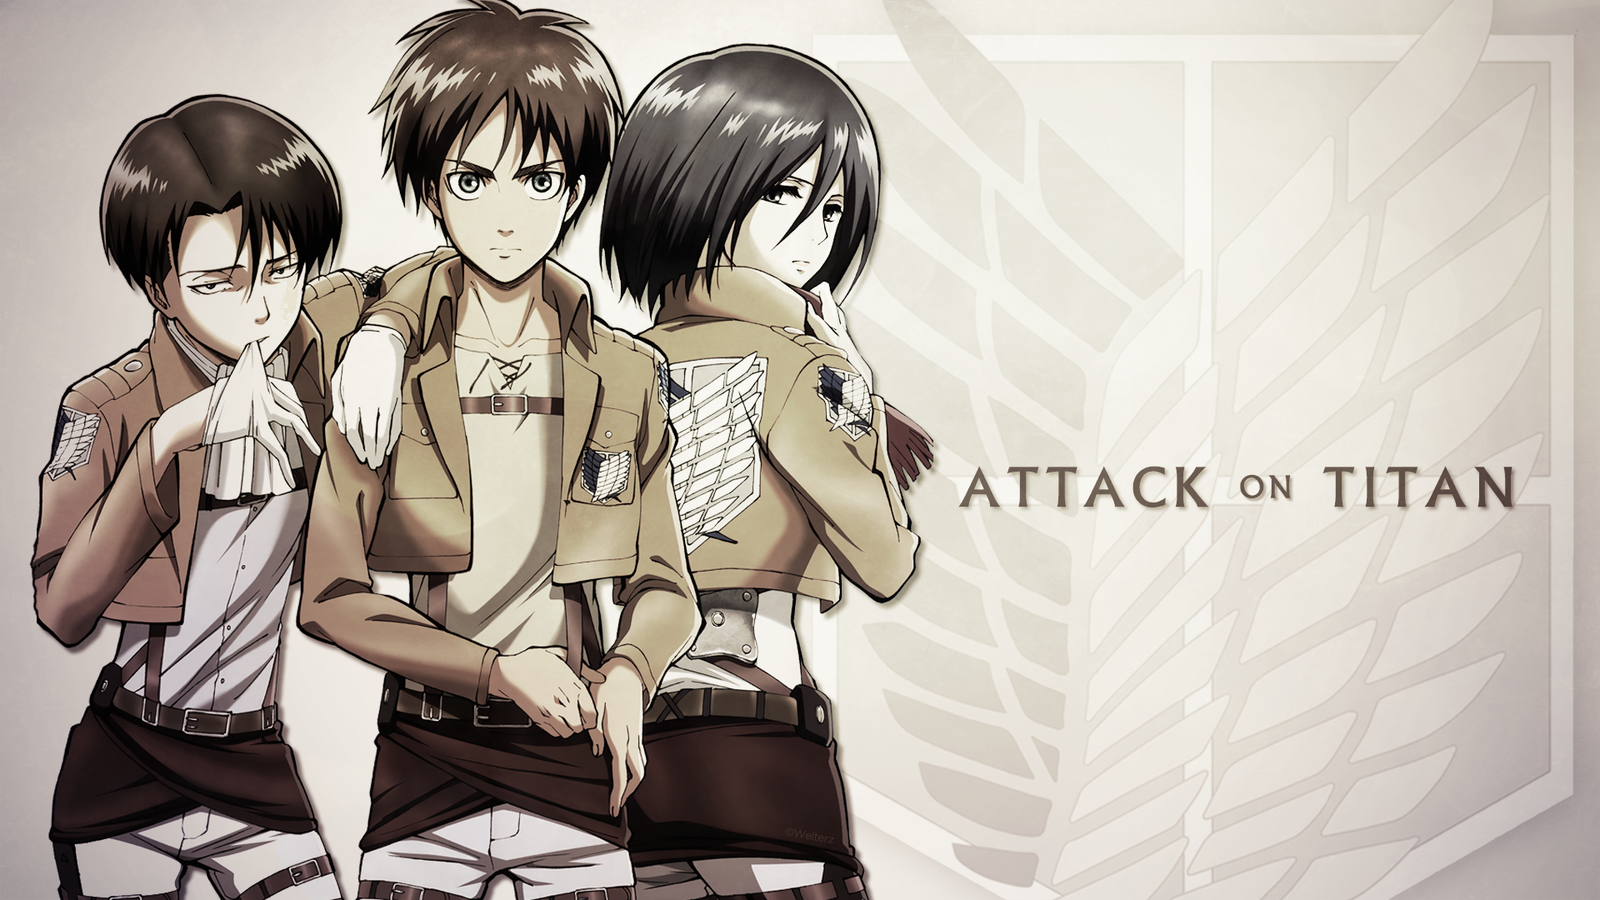 Attack on Titan - Eren/Levi/Mikasa by Welterz on DeviantArt